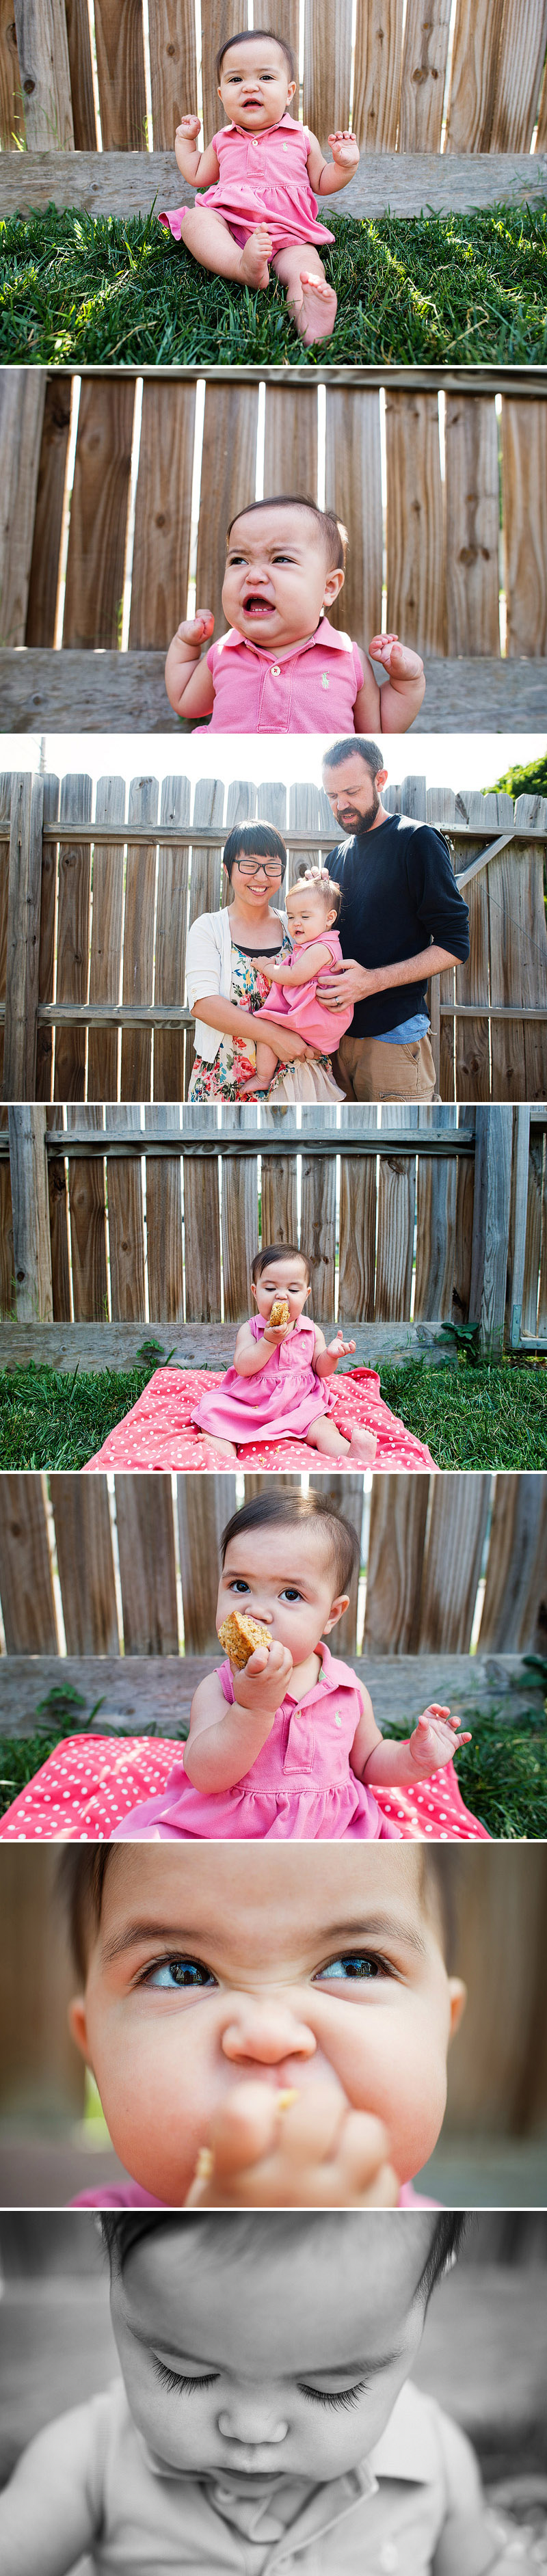 Baby eating a muffin and loving it.